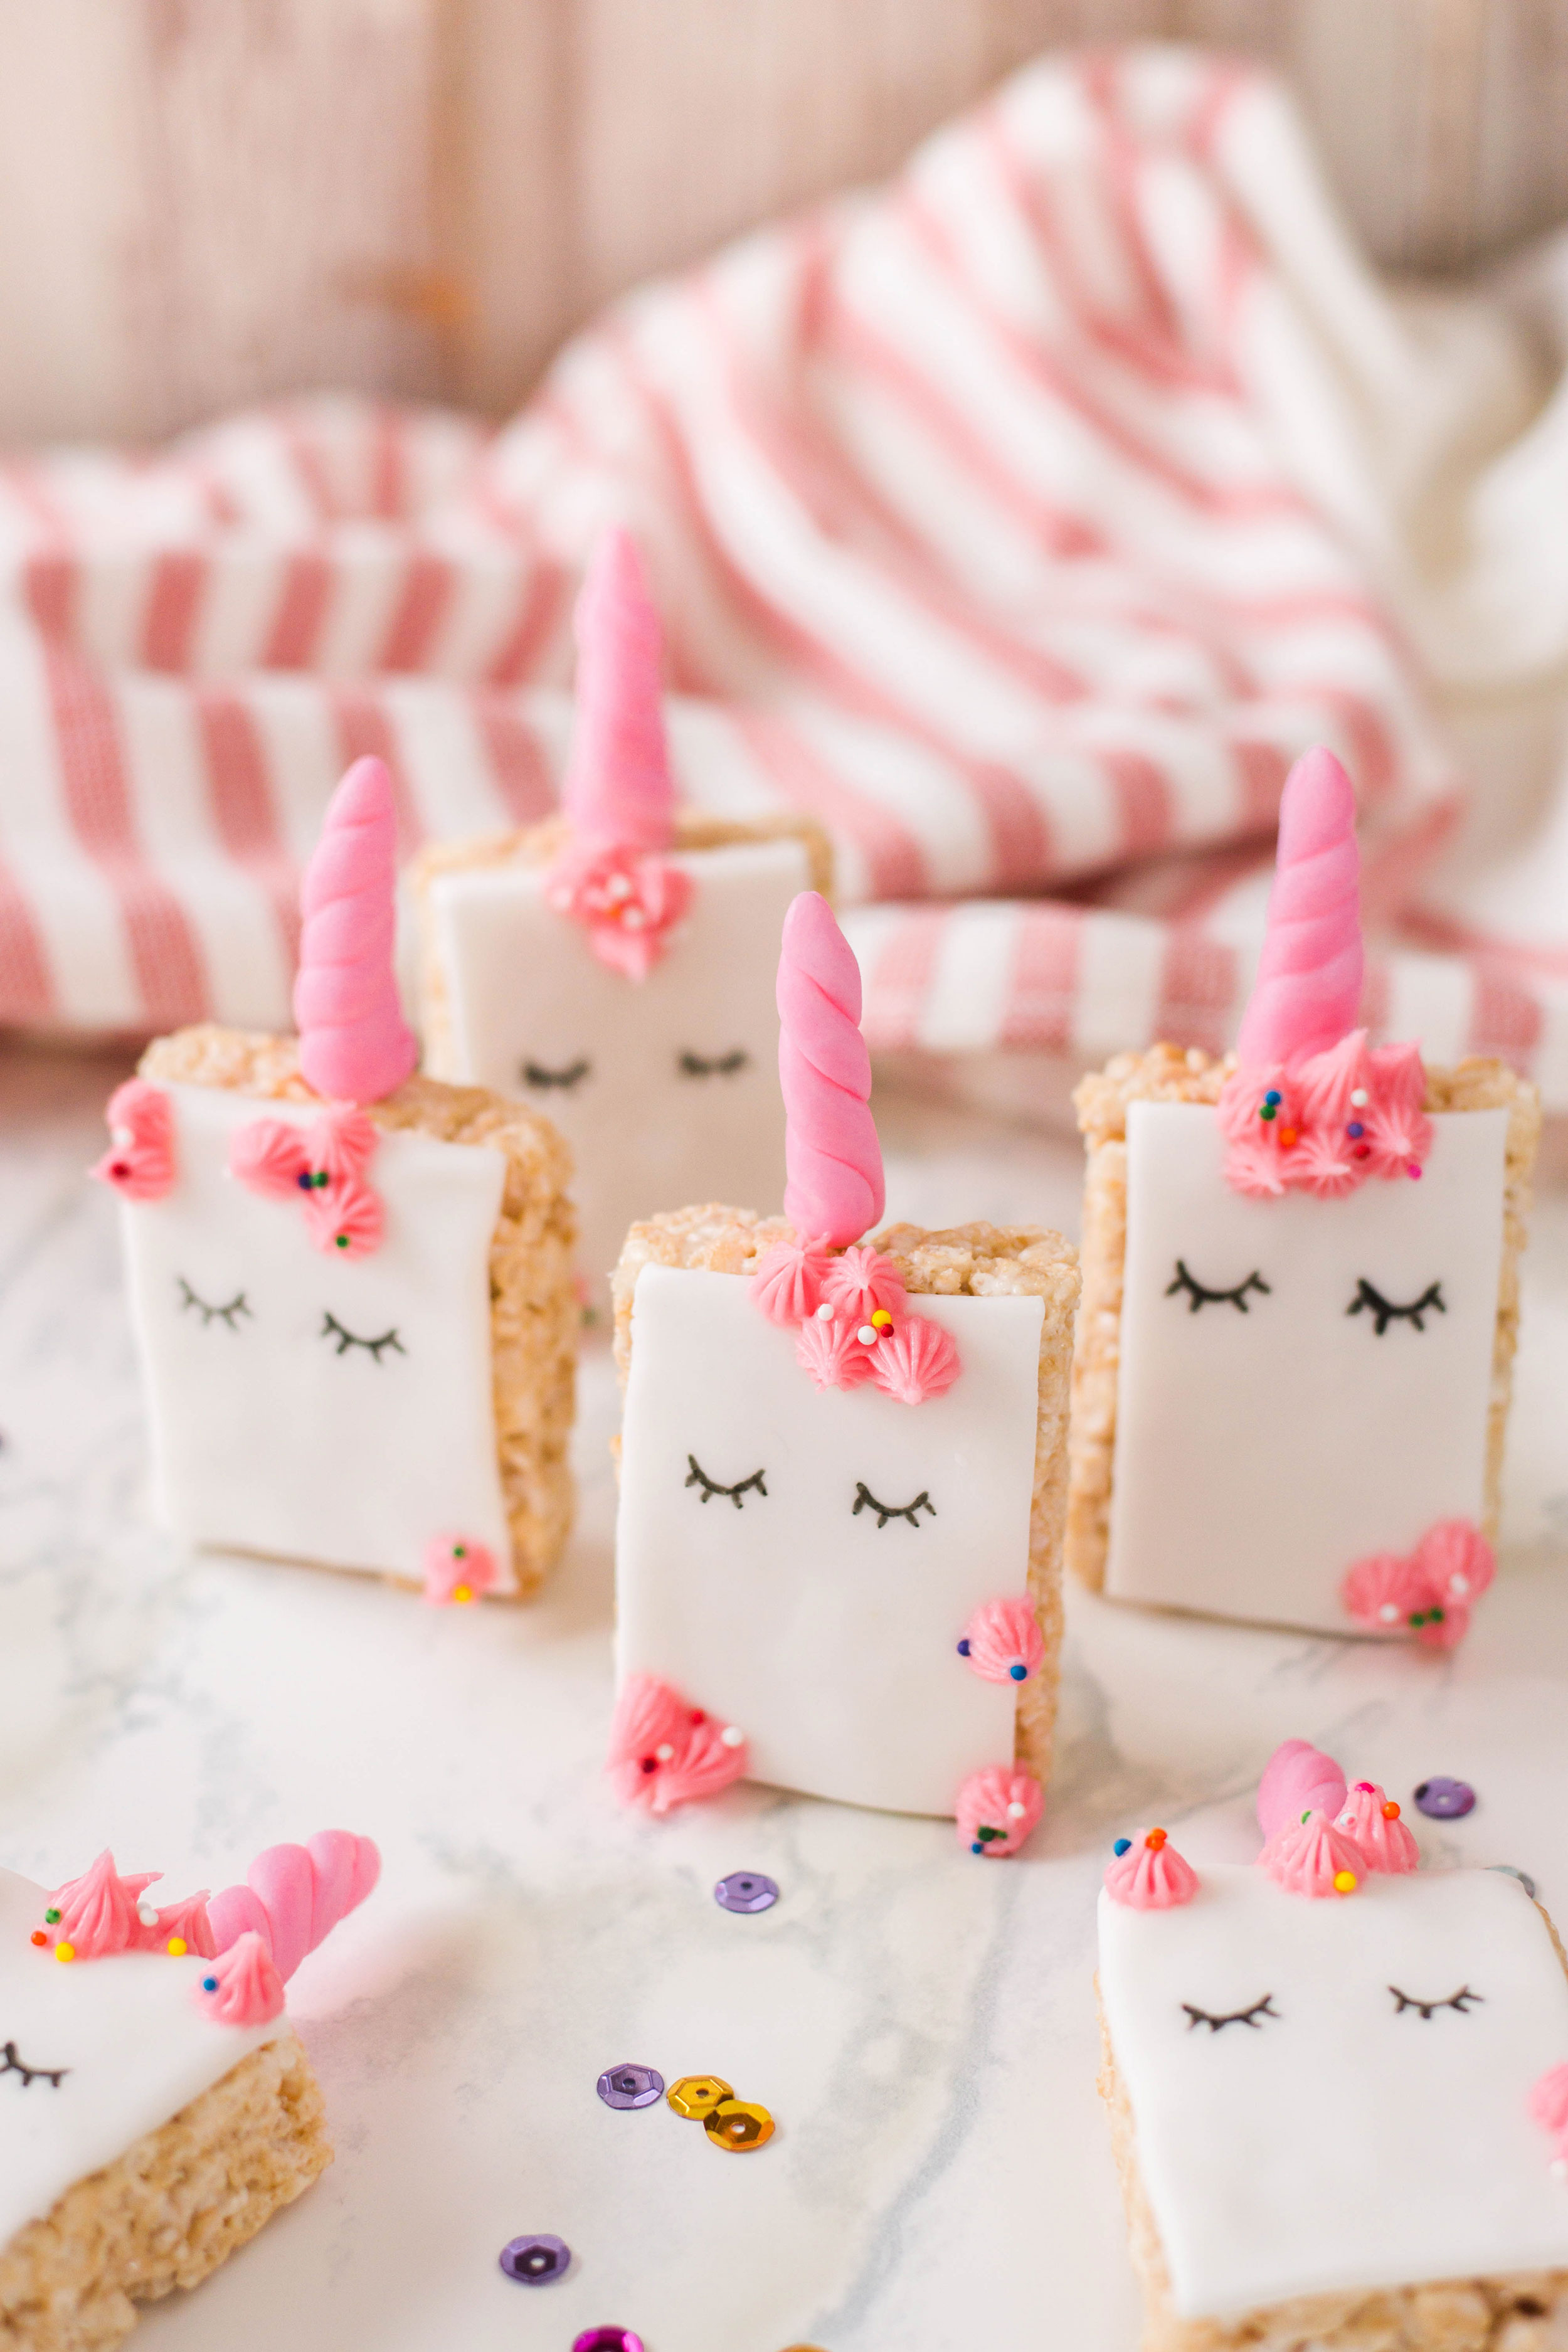 These unicorn rice krispie treats will have you believing in ALL the unicorn magic out there! #unicornparty